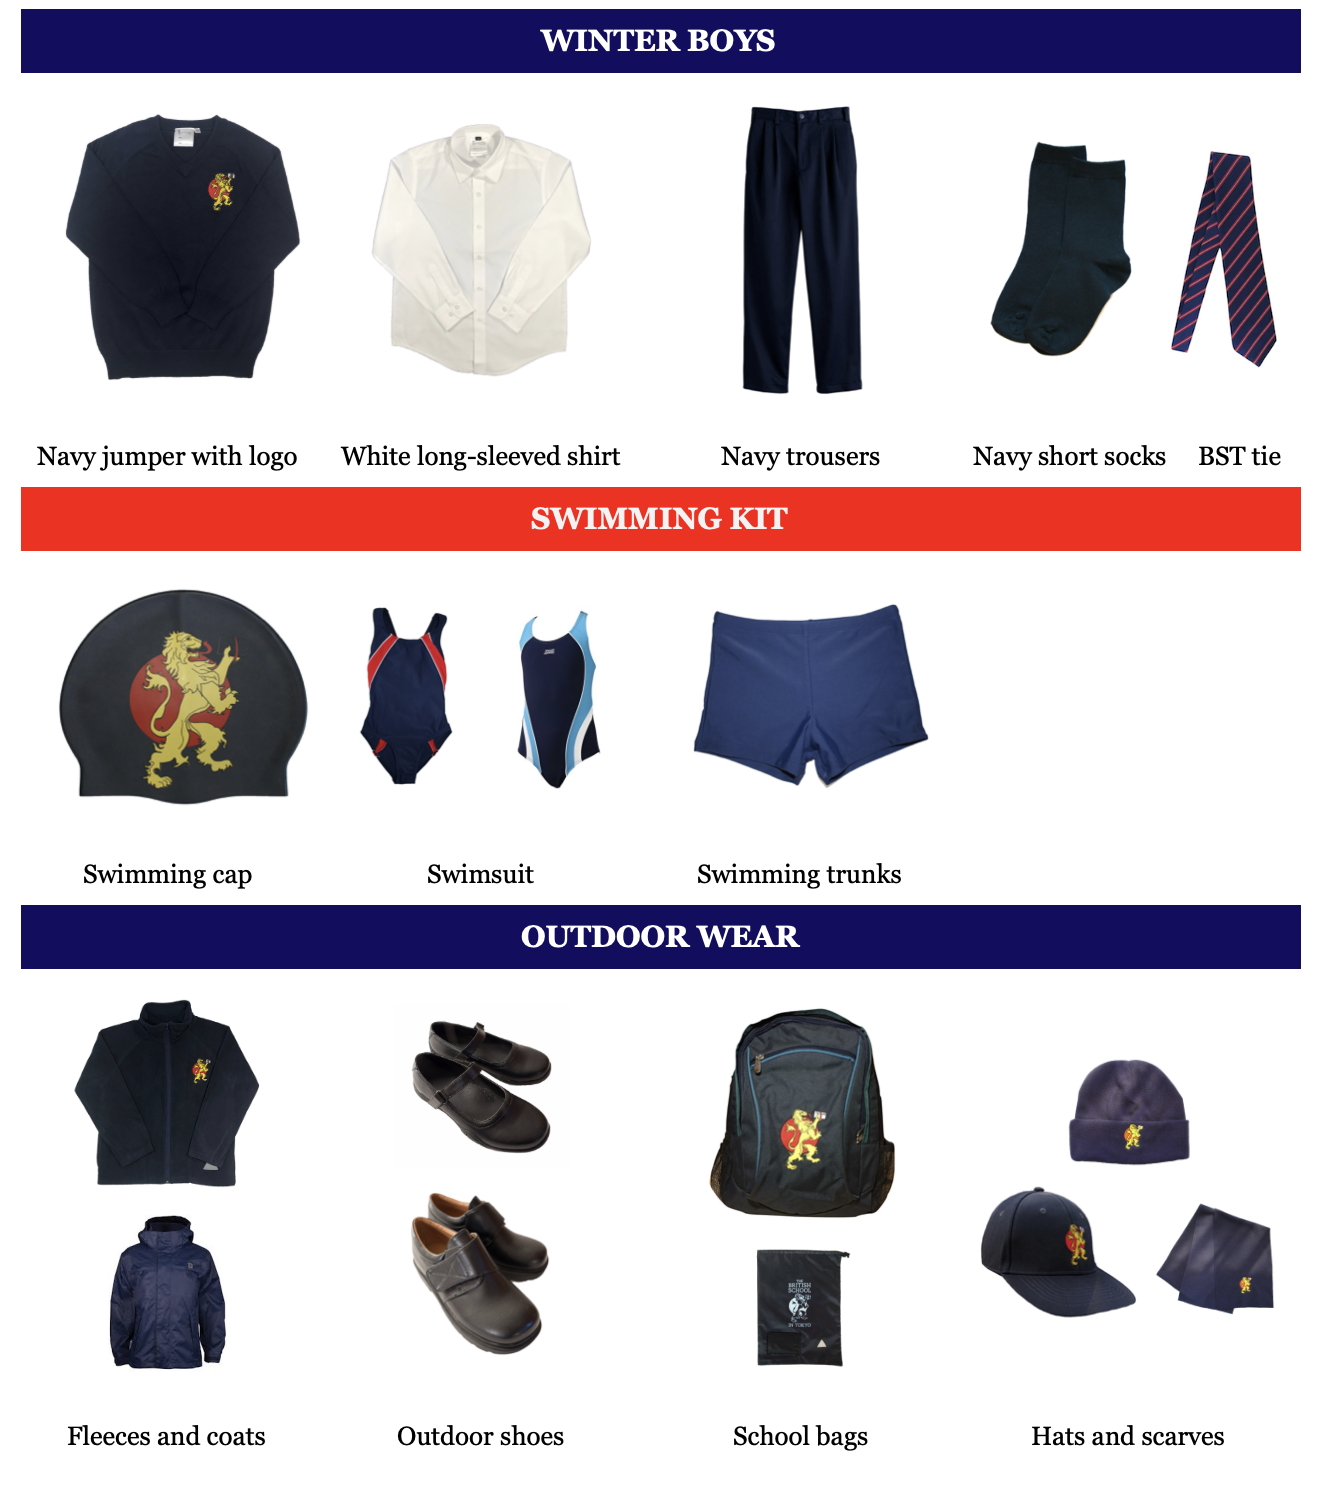 bst-uniform-guide-6.png